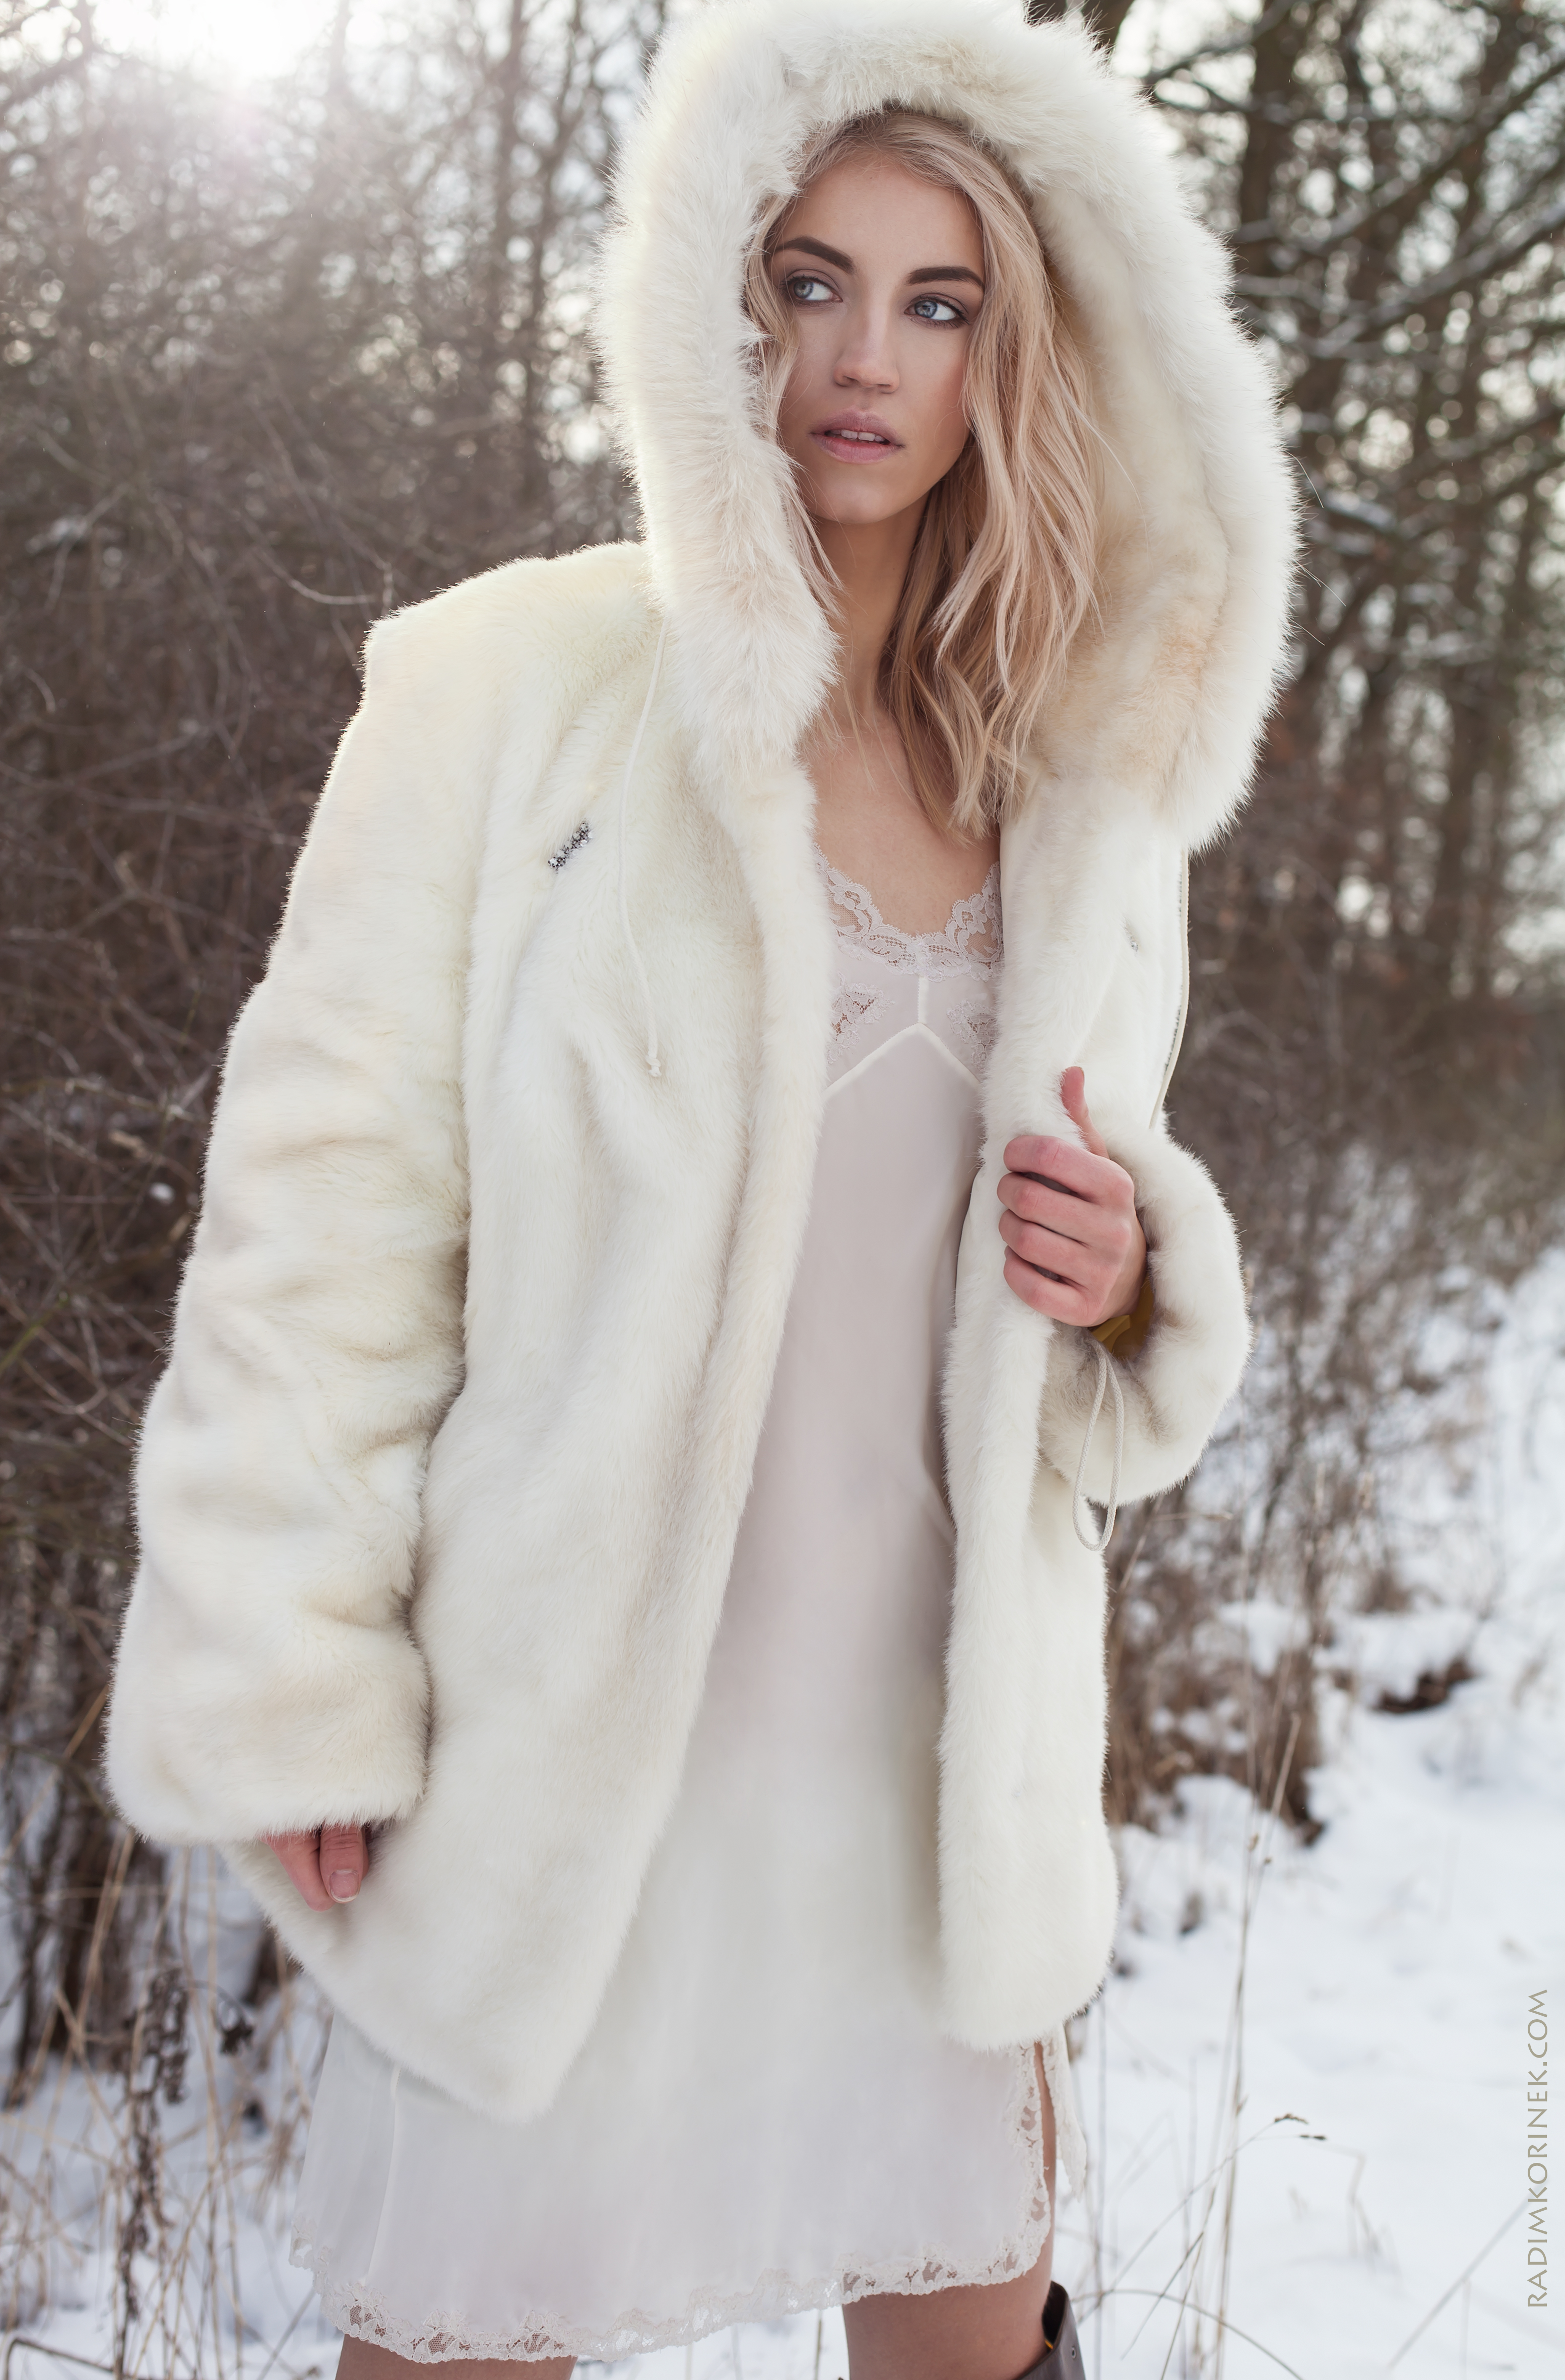 https://dailystyle.cz/wp-content/uploads/2016/01/IMG_016415.jpg